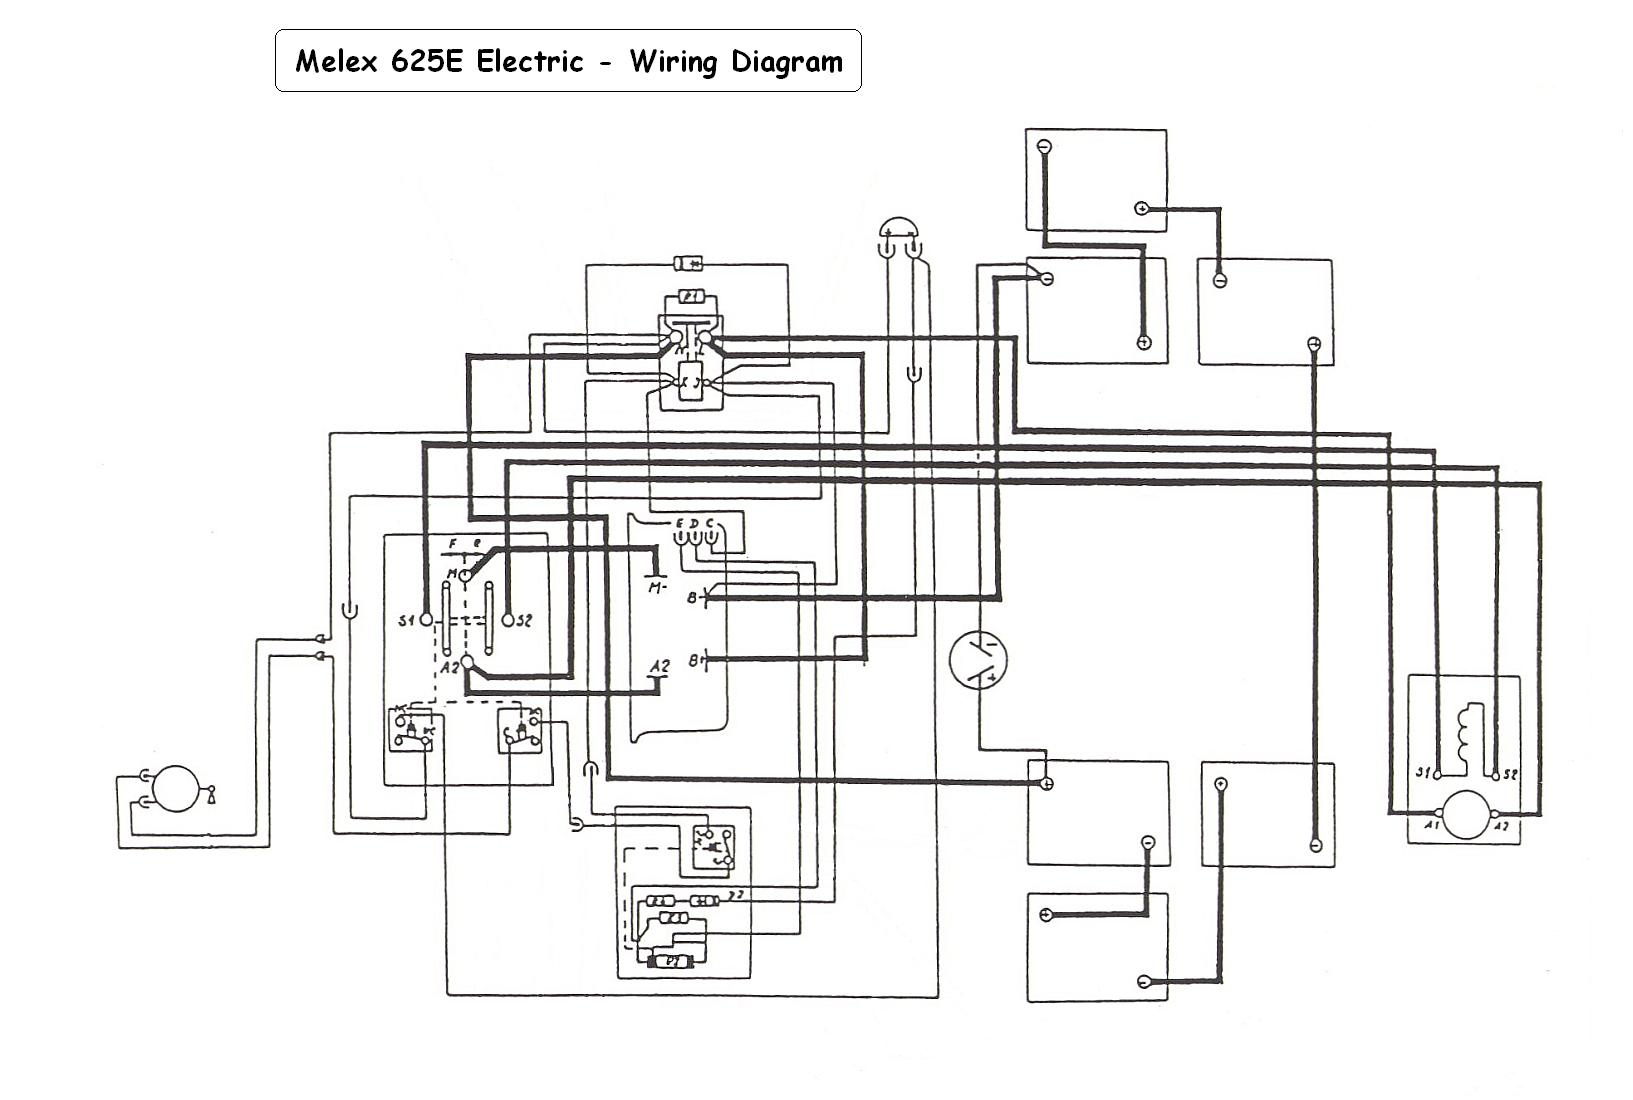 melex golf cart 36 volt system wiring diagram pds golf cart 36 volt ezgo wiring diagram columbia par car 48v wiring diagram - wiring diagram